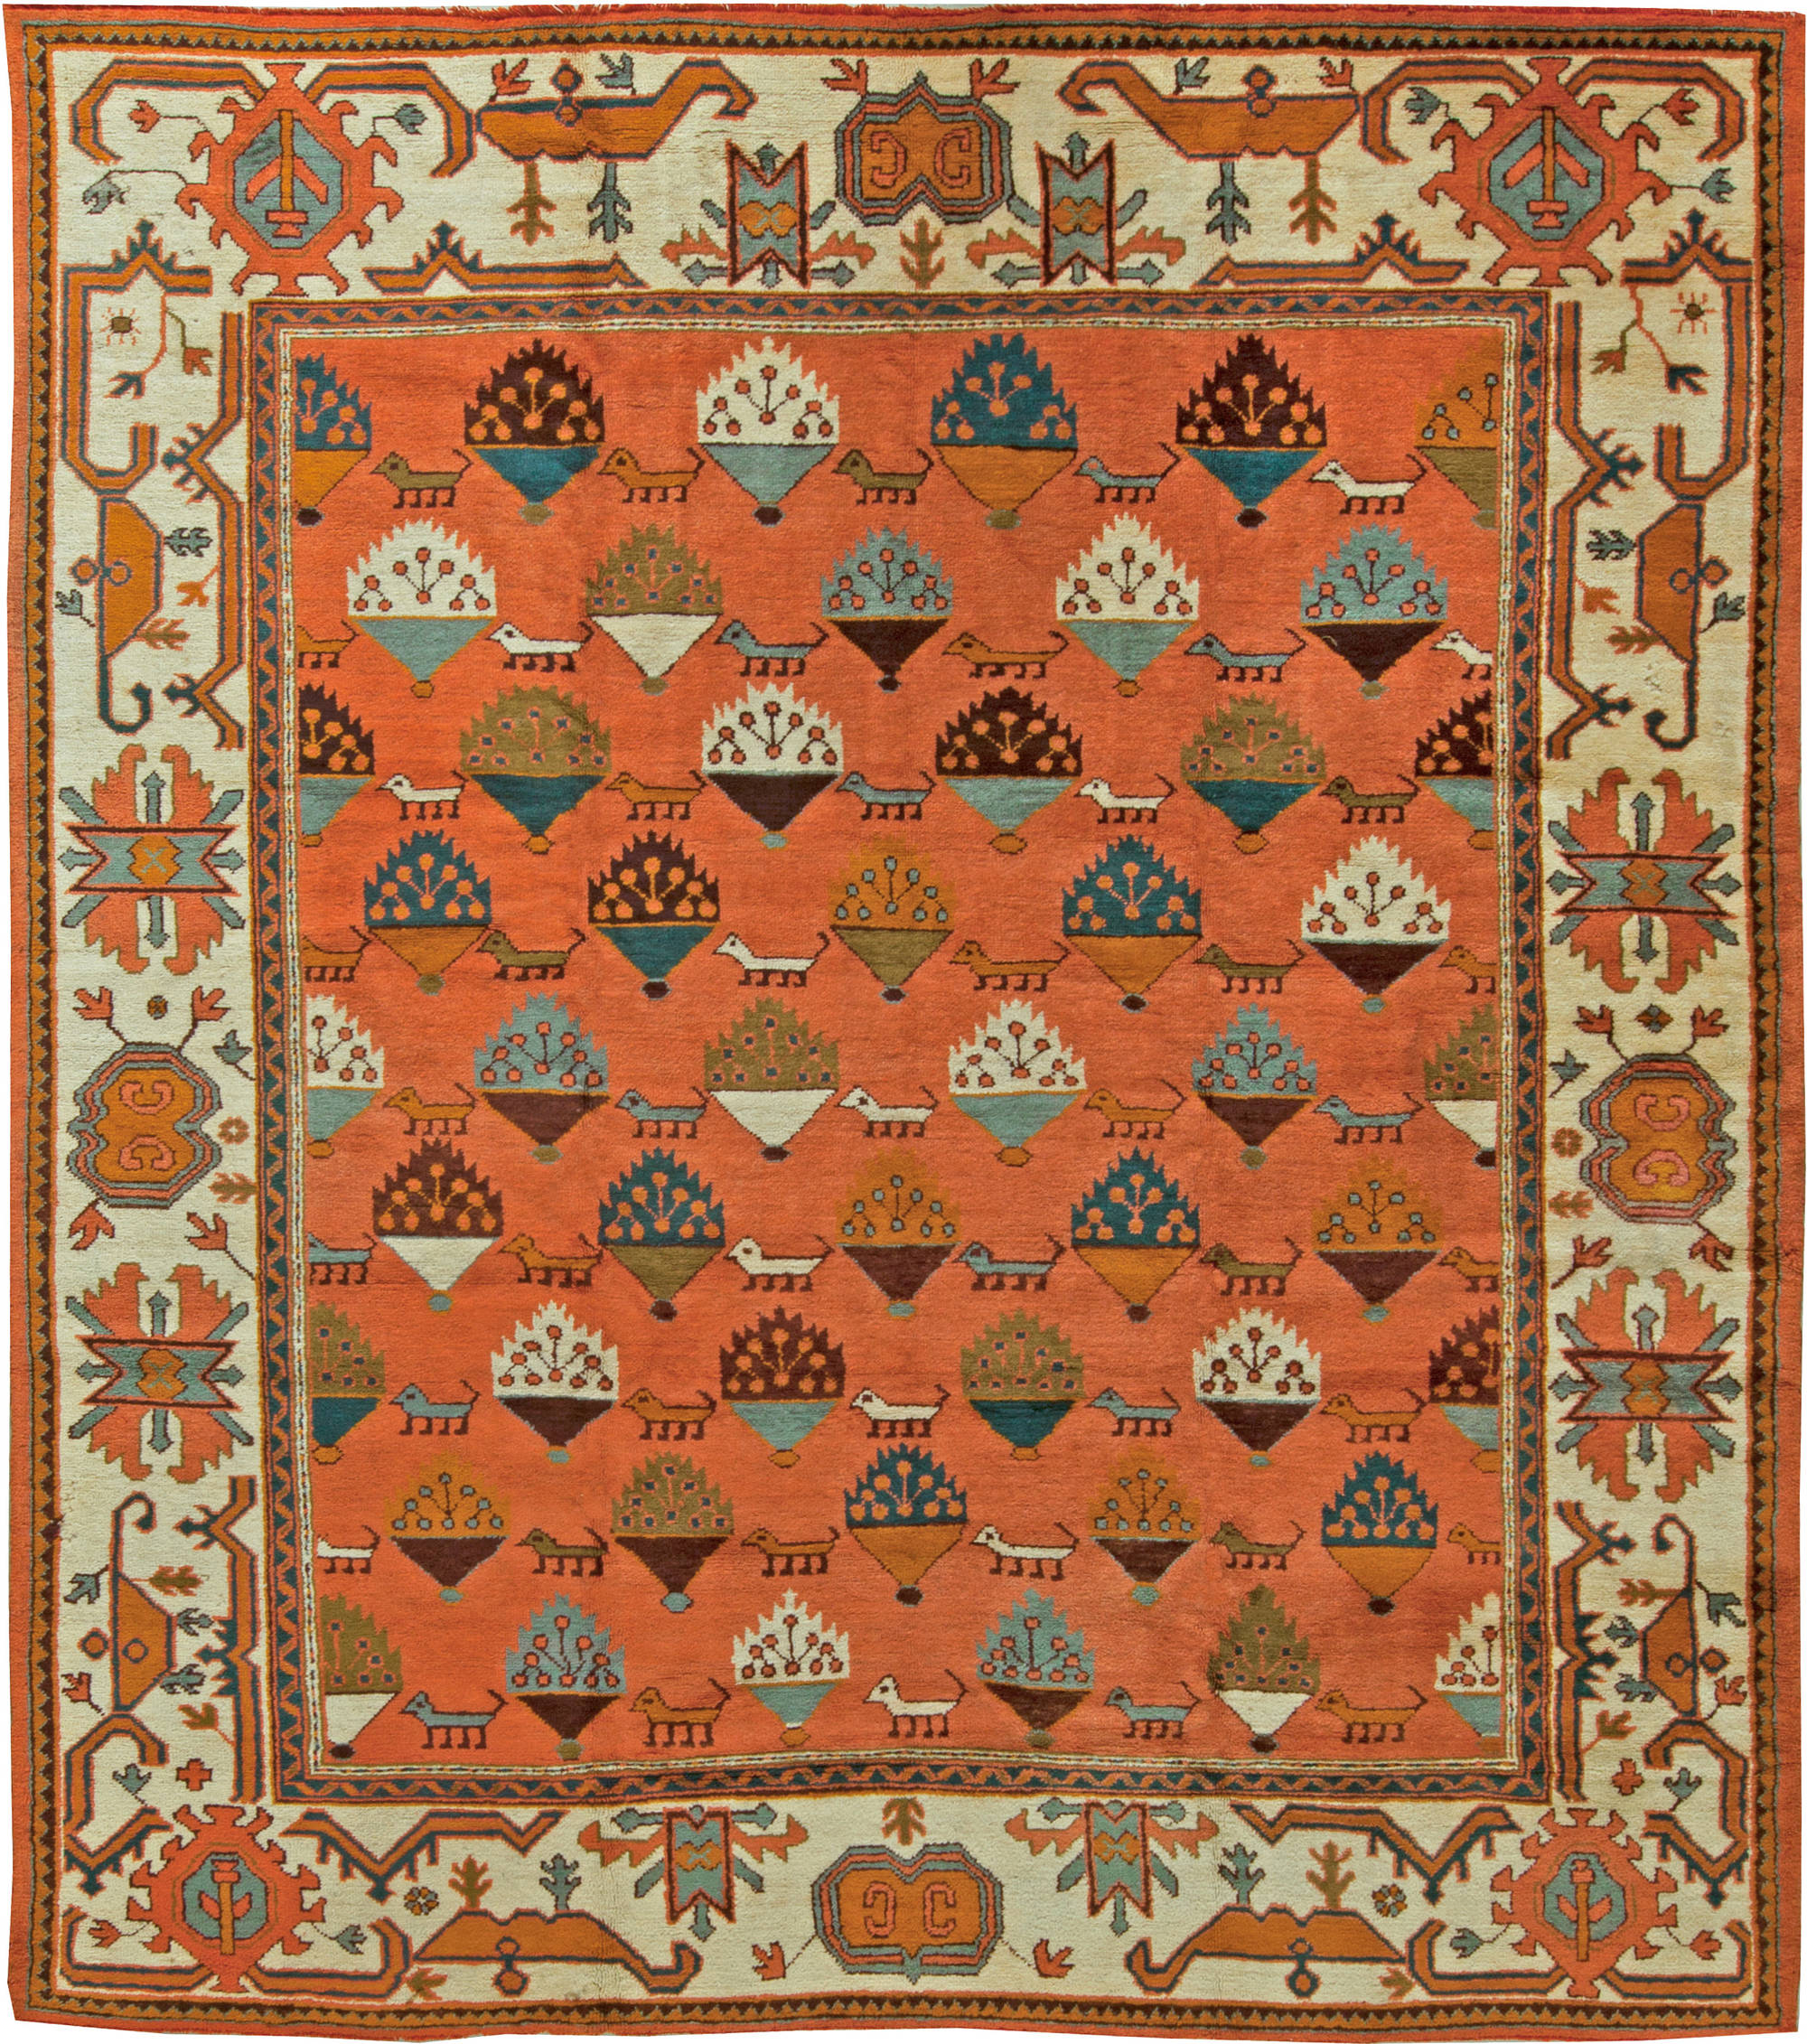 Antique Turkish Oushak Rug BB6092 By Doris Leslie Blau